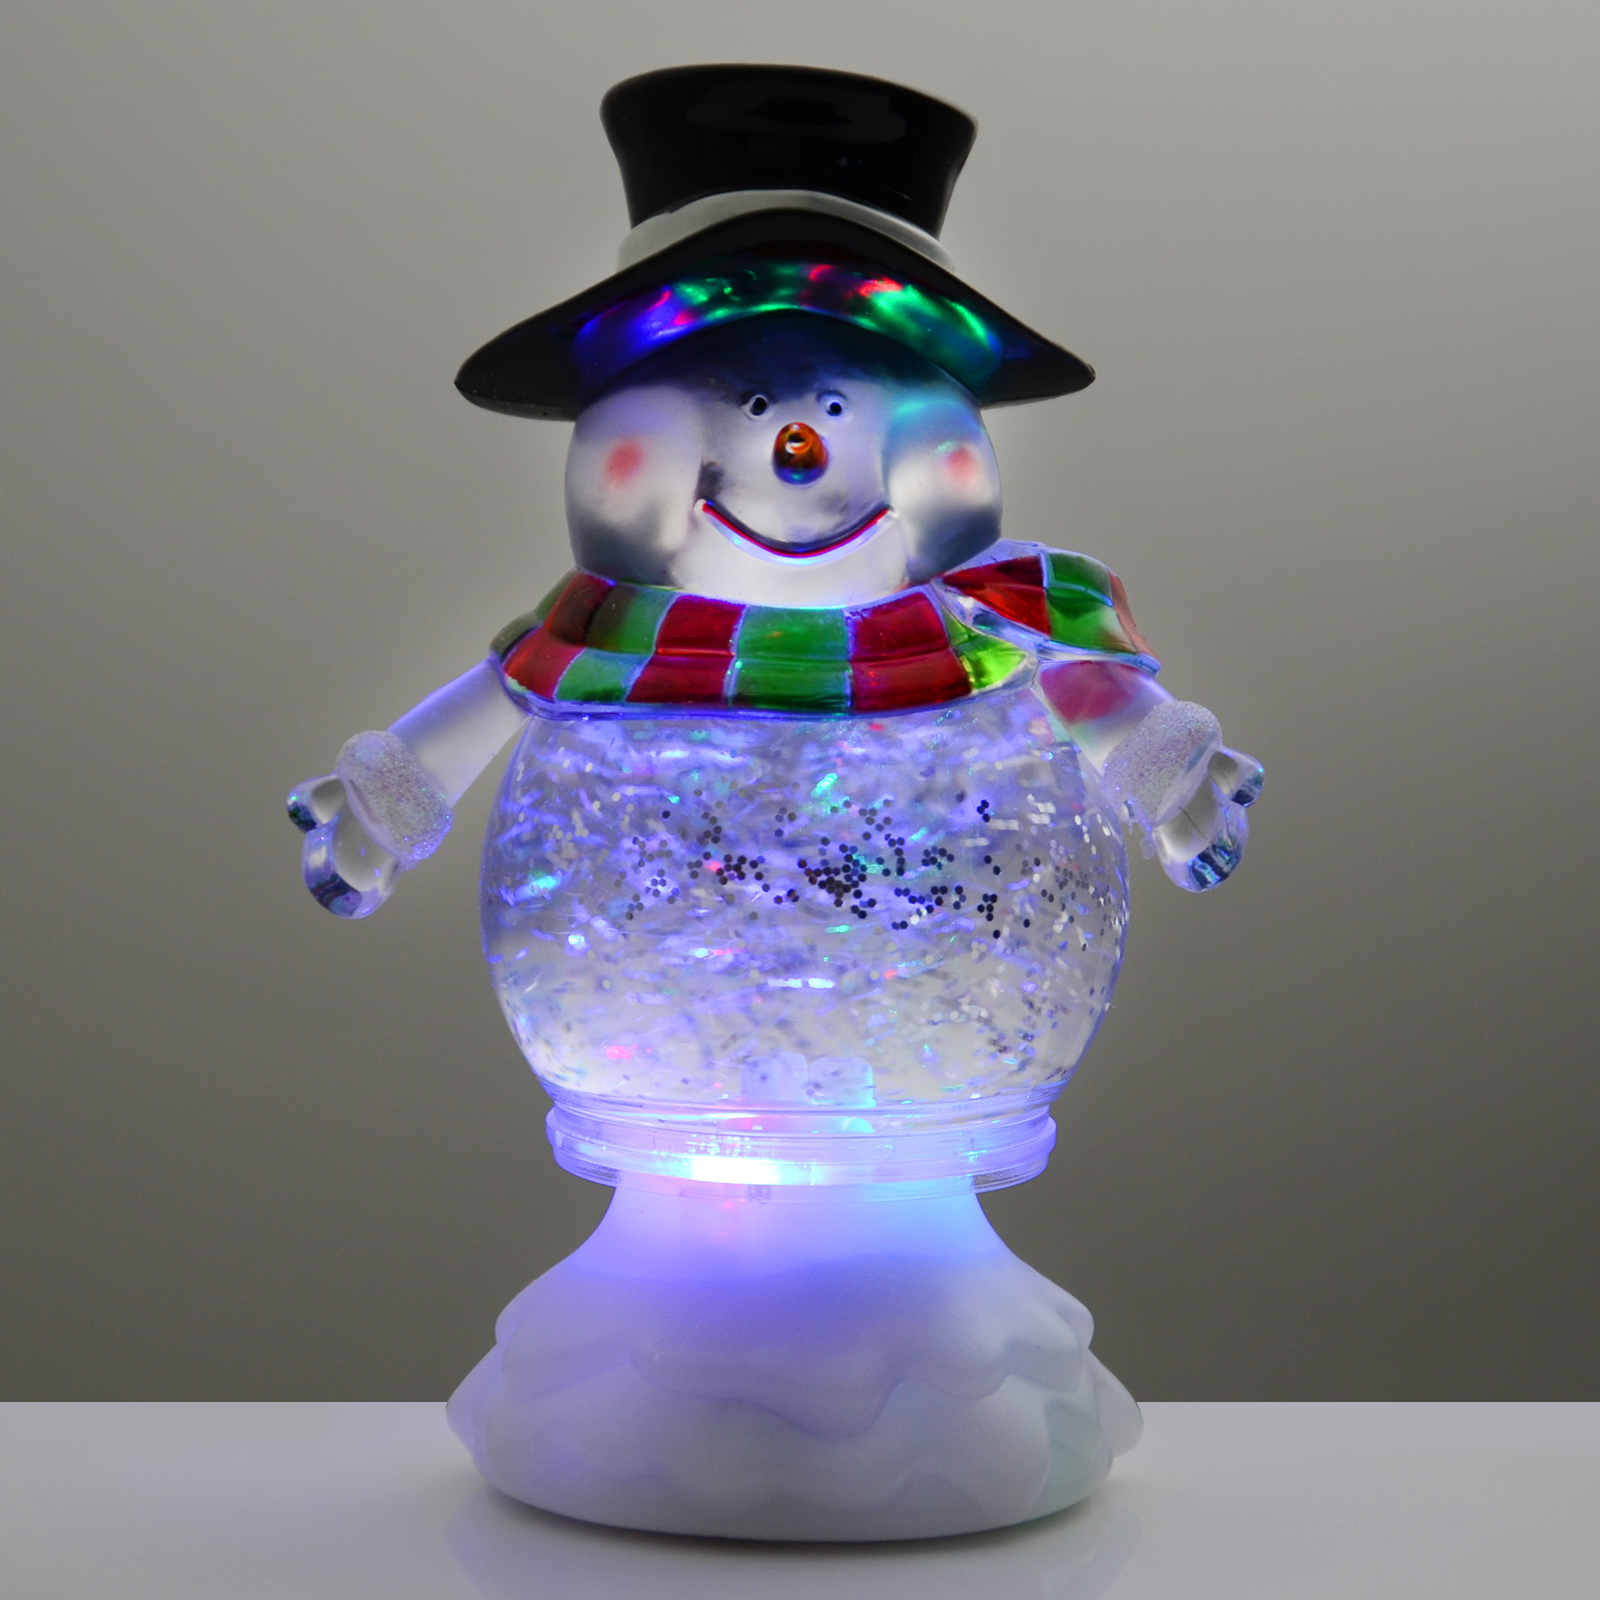 Christmas Ornaments That Light Up | Home Design